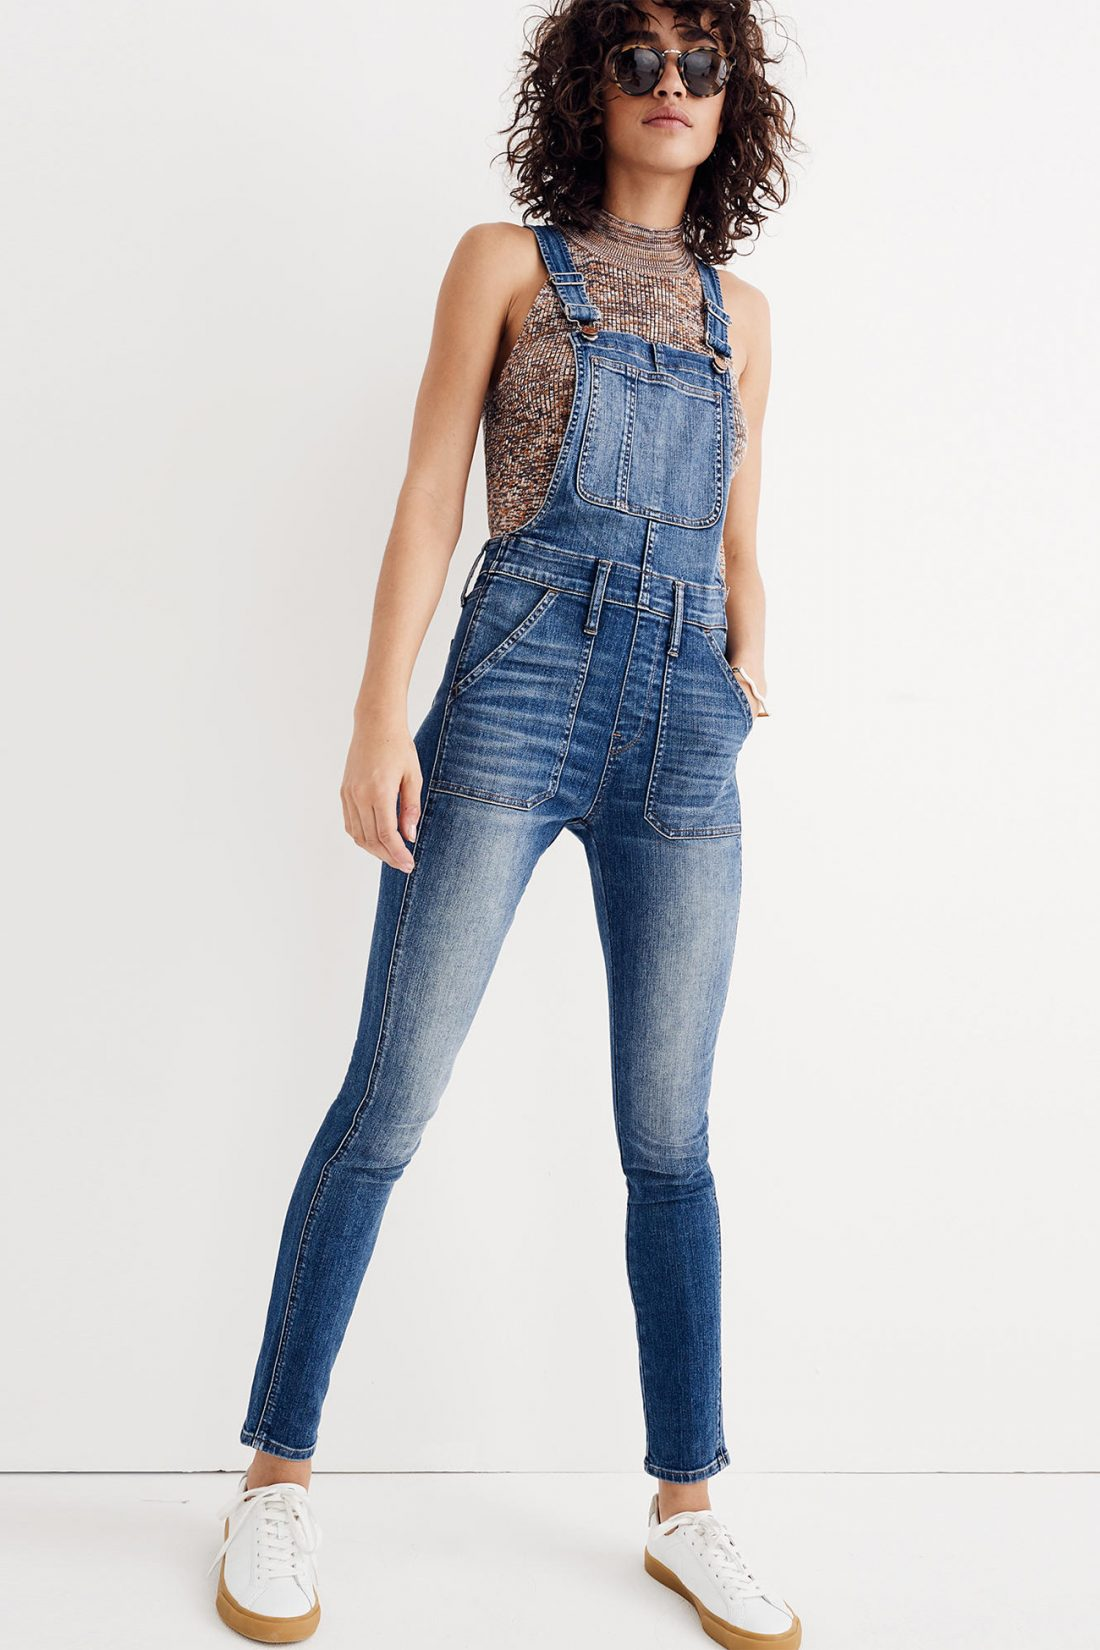 Back to school fashion: Overalls